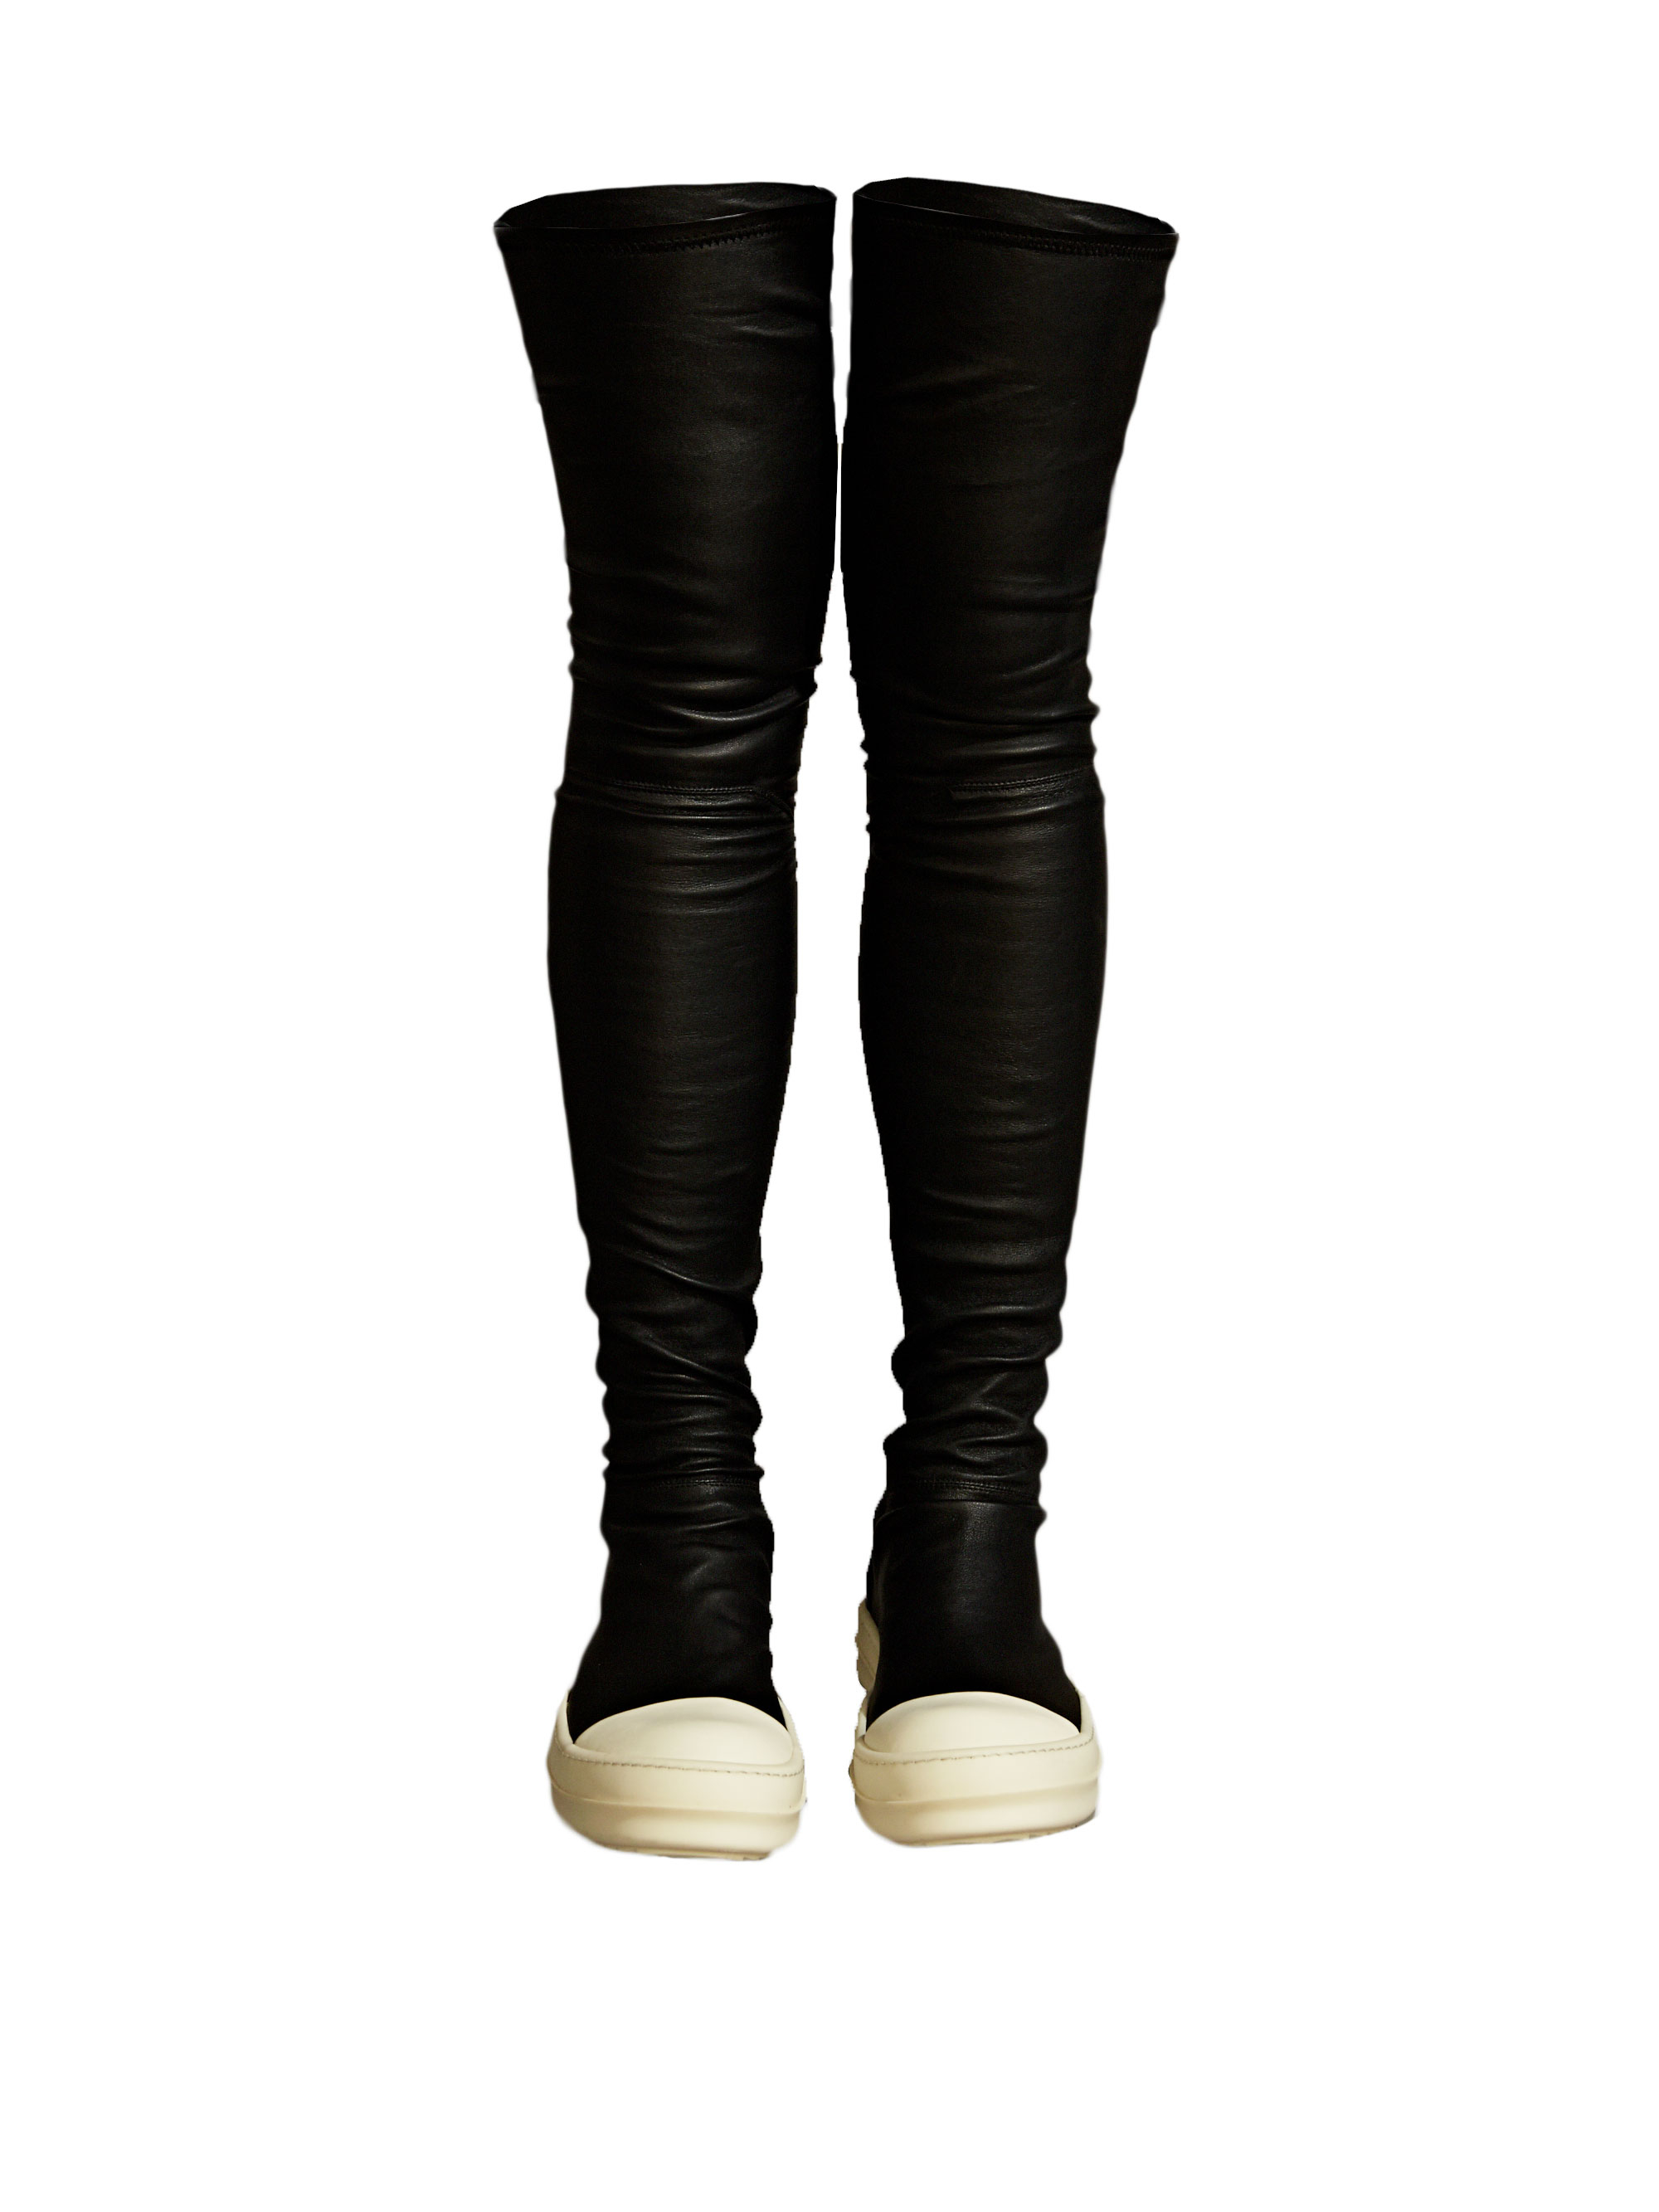 5bfa94554 Rick Owens Womens Thigh High Sneaker Boots in Black - Lyst